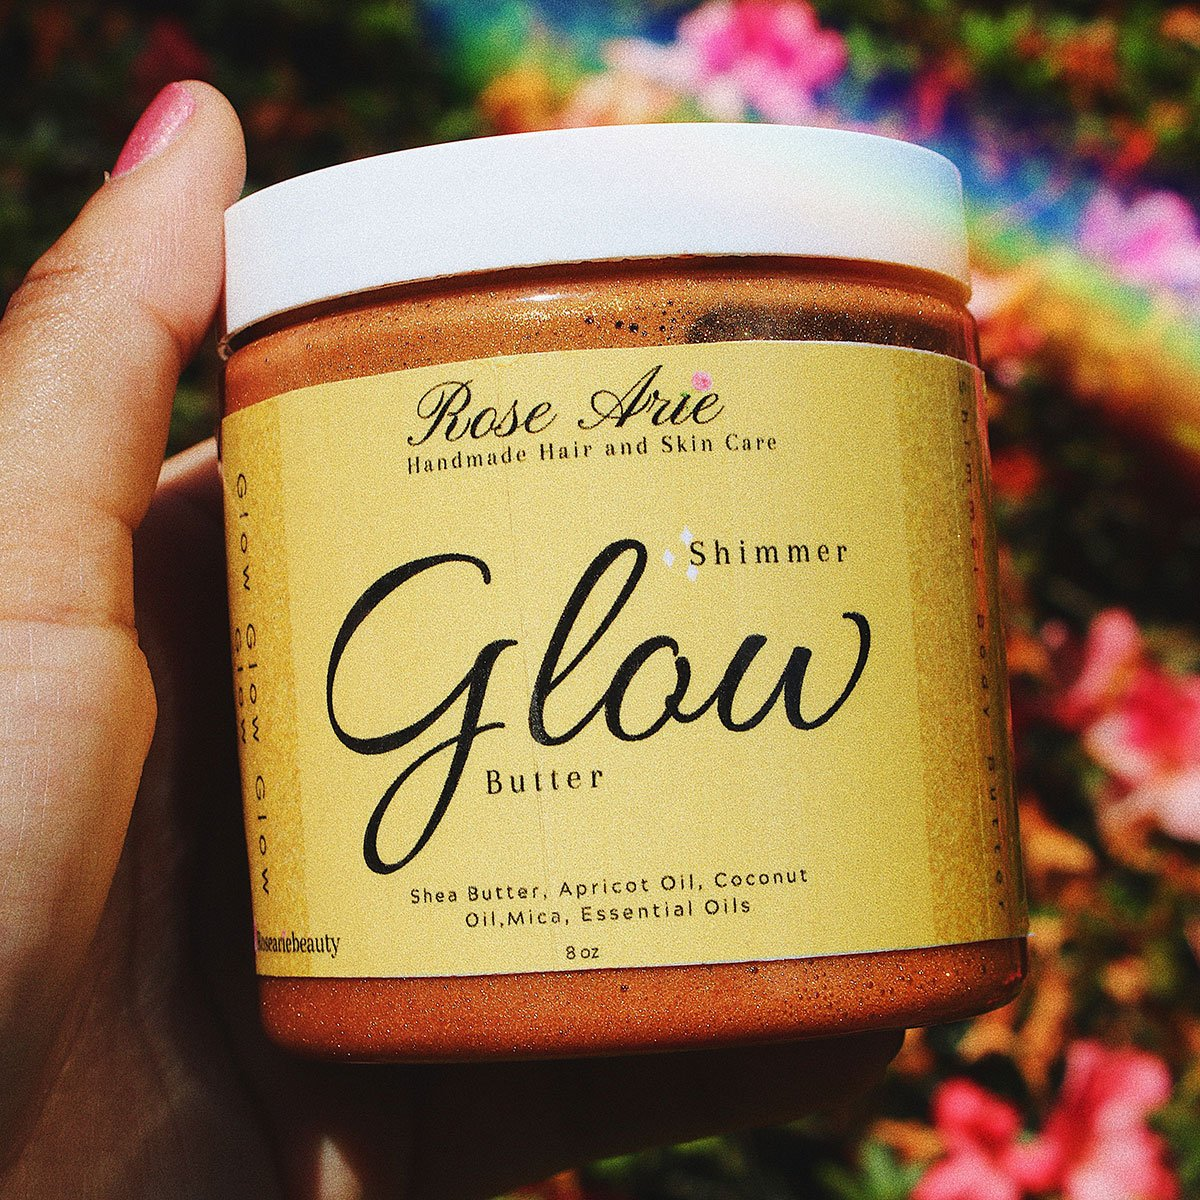 Shimmer body butter product label by Rose Arie Beauty